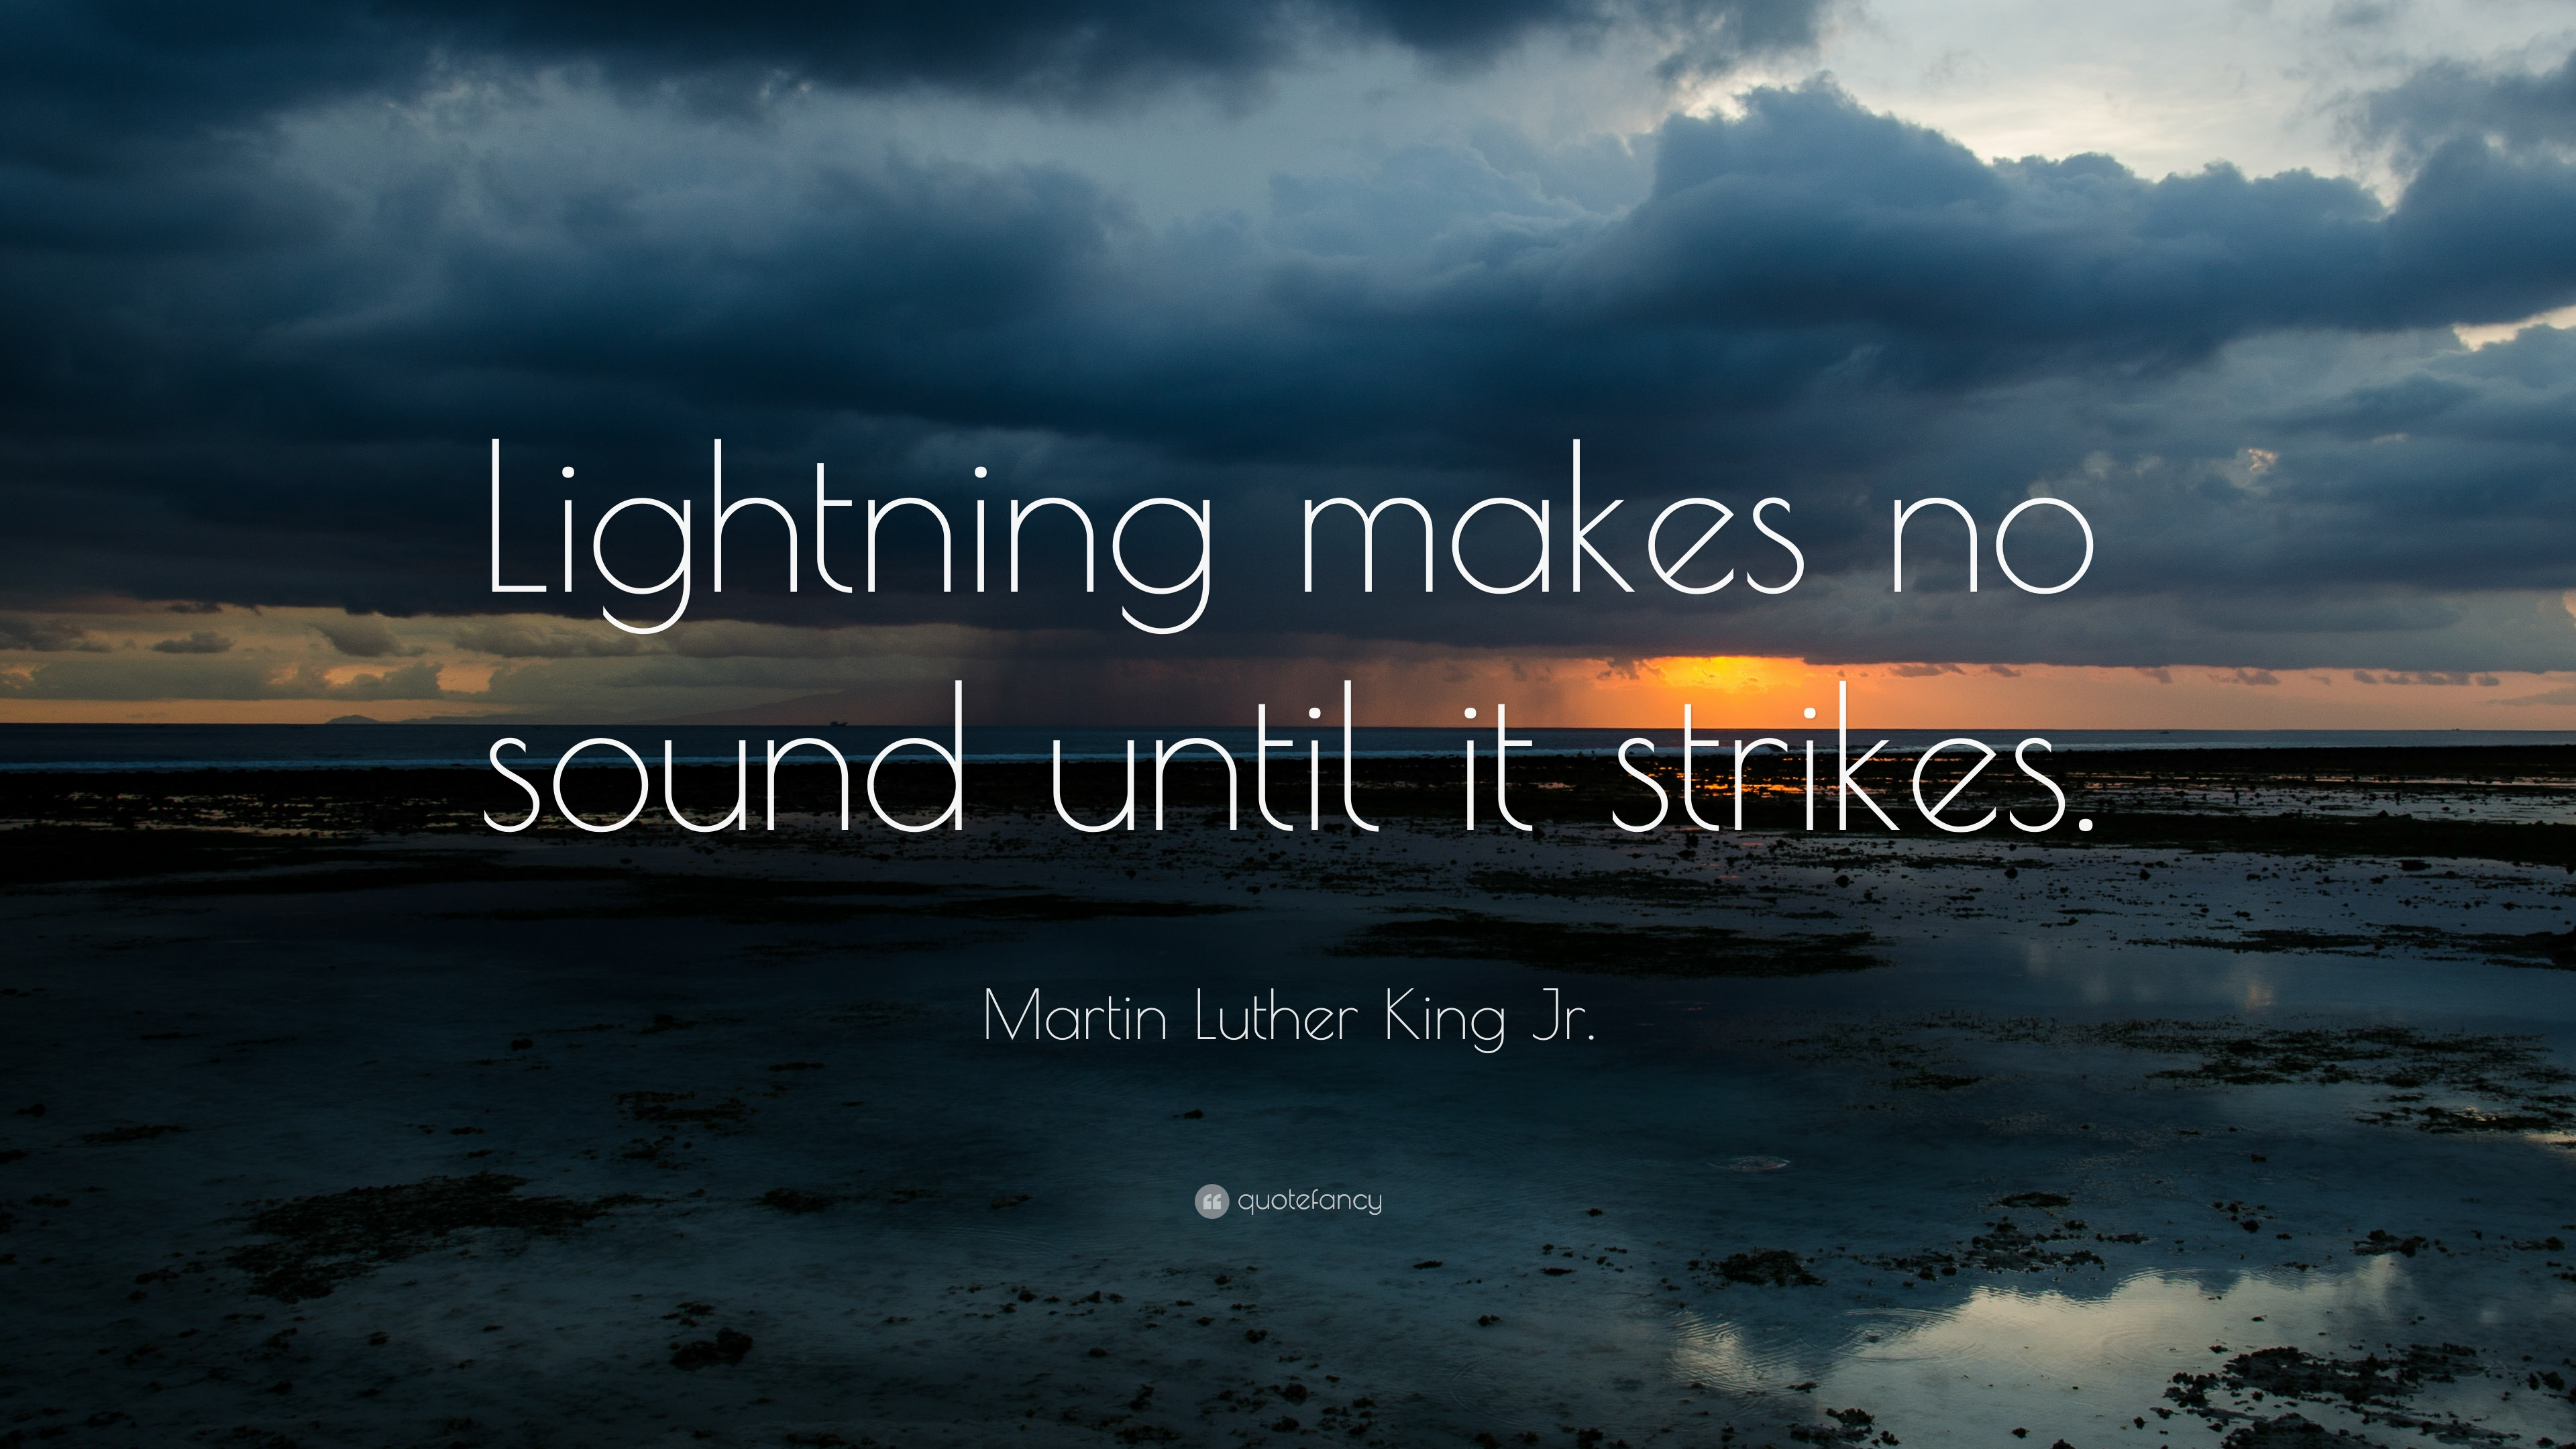 Islamic Quotes Wallpapers For Whatsapp Martin Luther King Jr Quote Lightning Makes No Sound